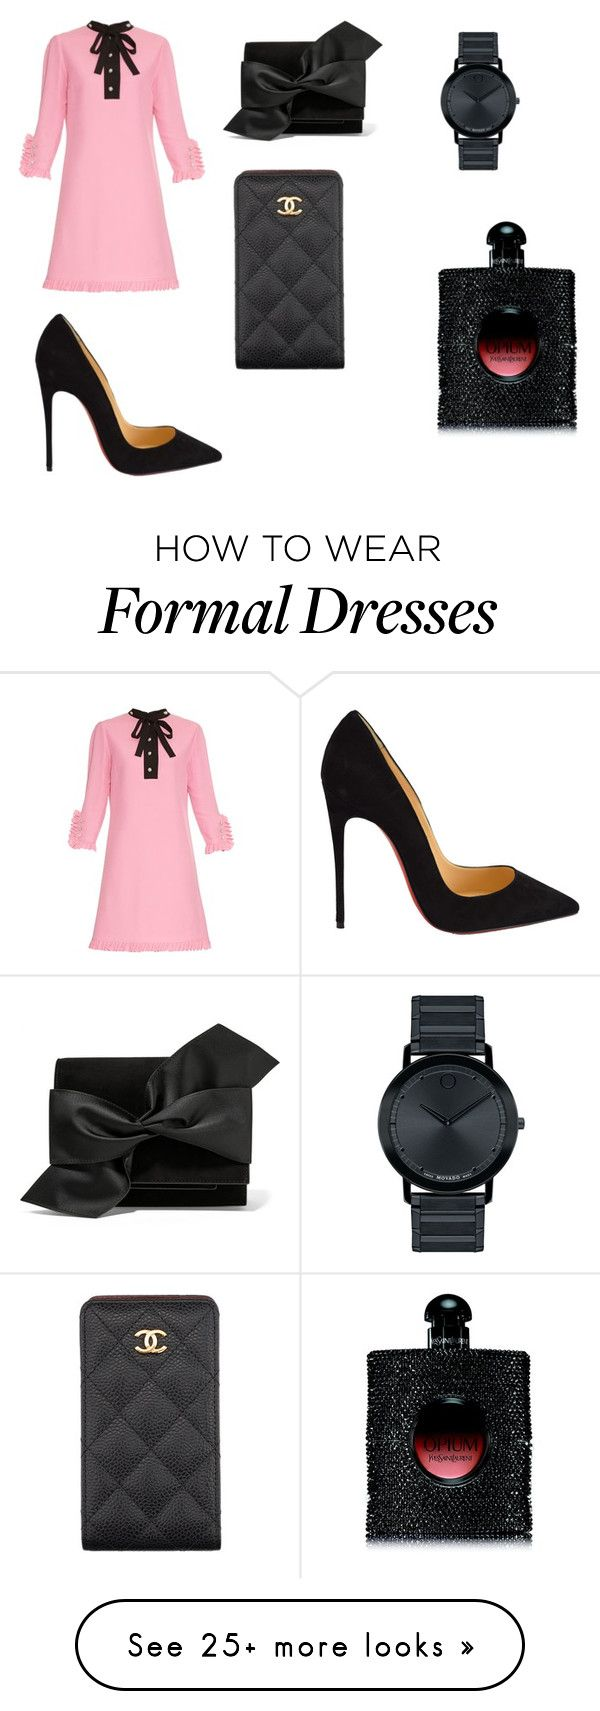 """""""Formal"""" by mariardz on Polyvore featuring moda, Gucci, Christian Louboutin, Victoria Beckham, Chanel, Movado ve Yves Saint Laurent"""